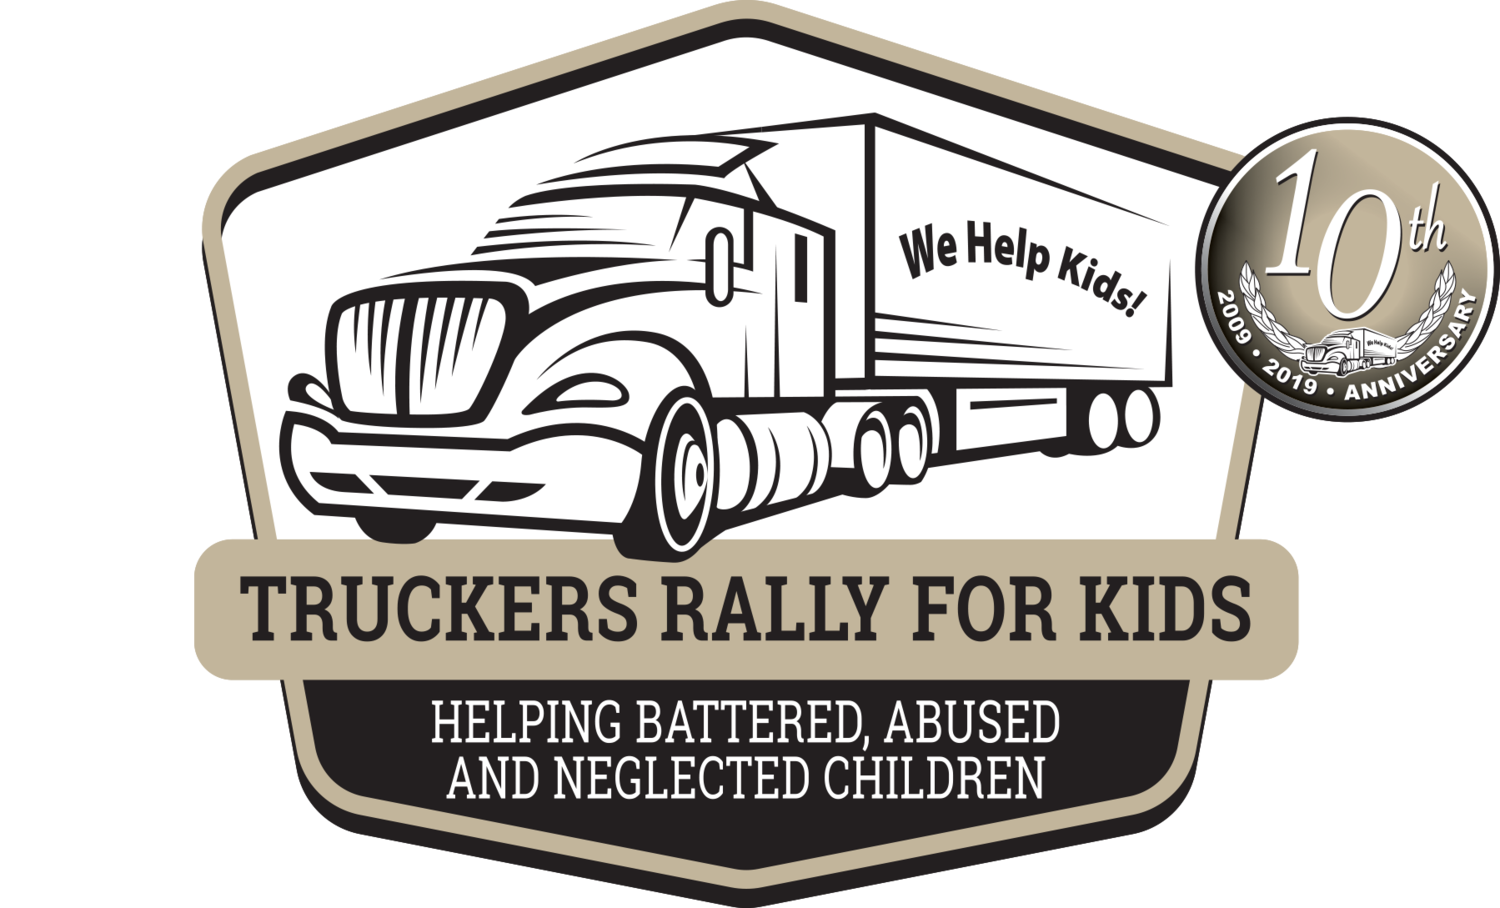 Truckers Rally for Kids